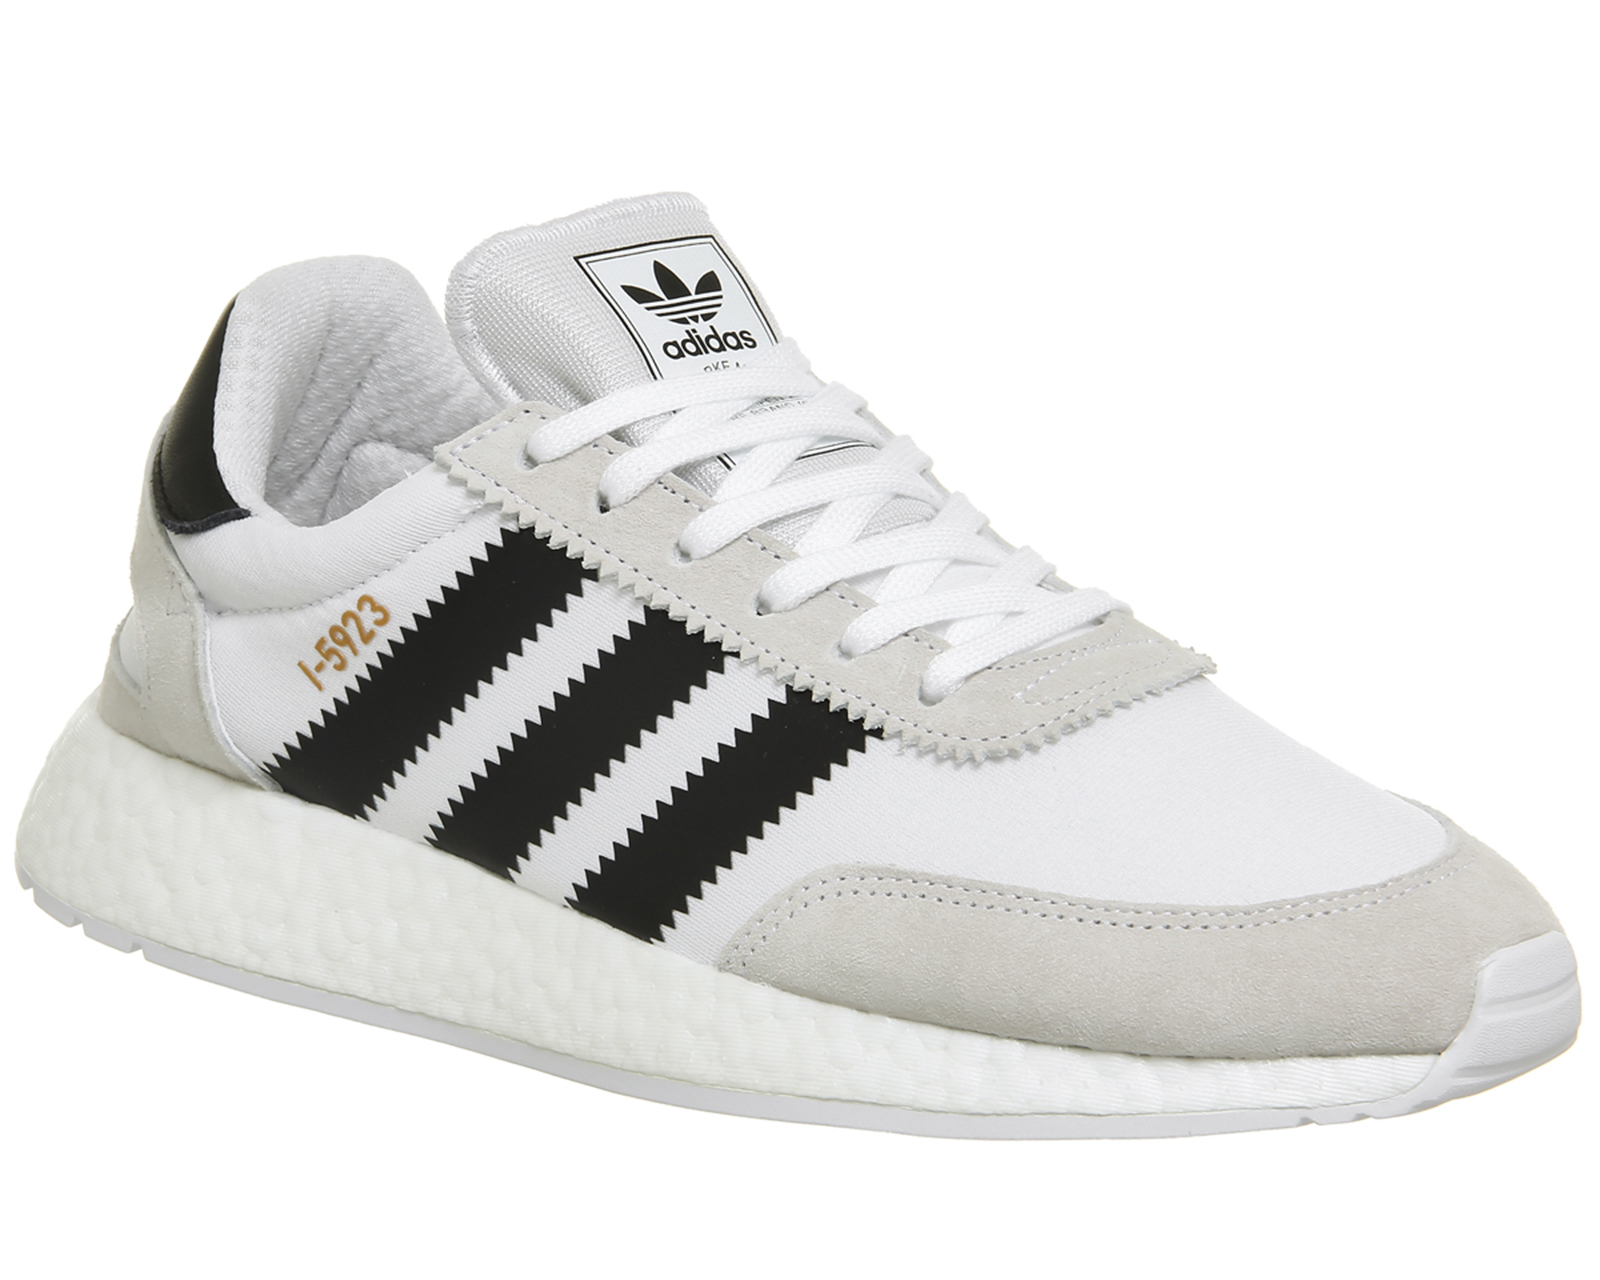 94516d9cf Sentinel Mens Adidas I-5923 Trainers WHITE CORE BLACK COPPER Trainers Shoes